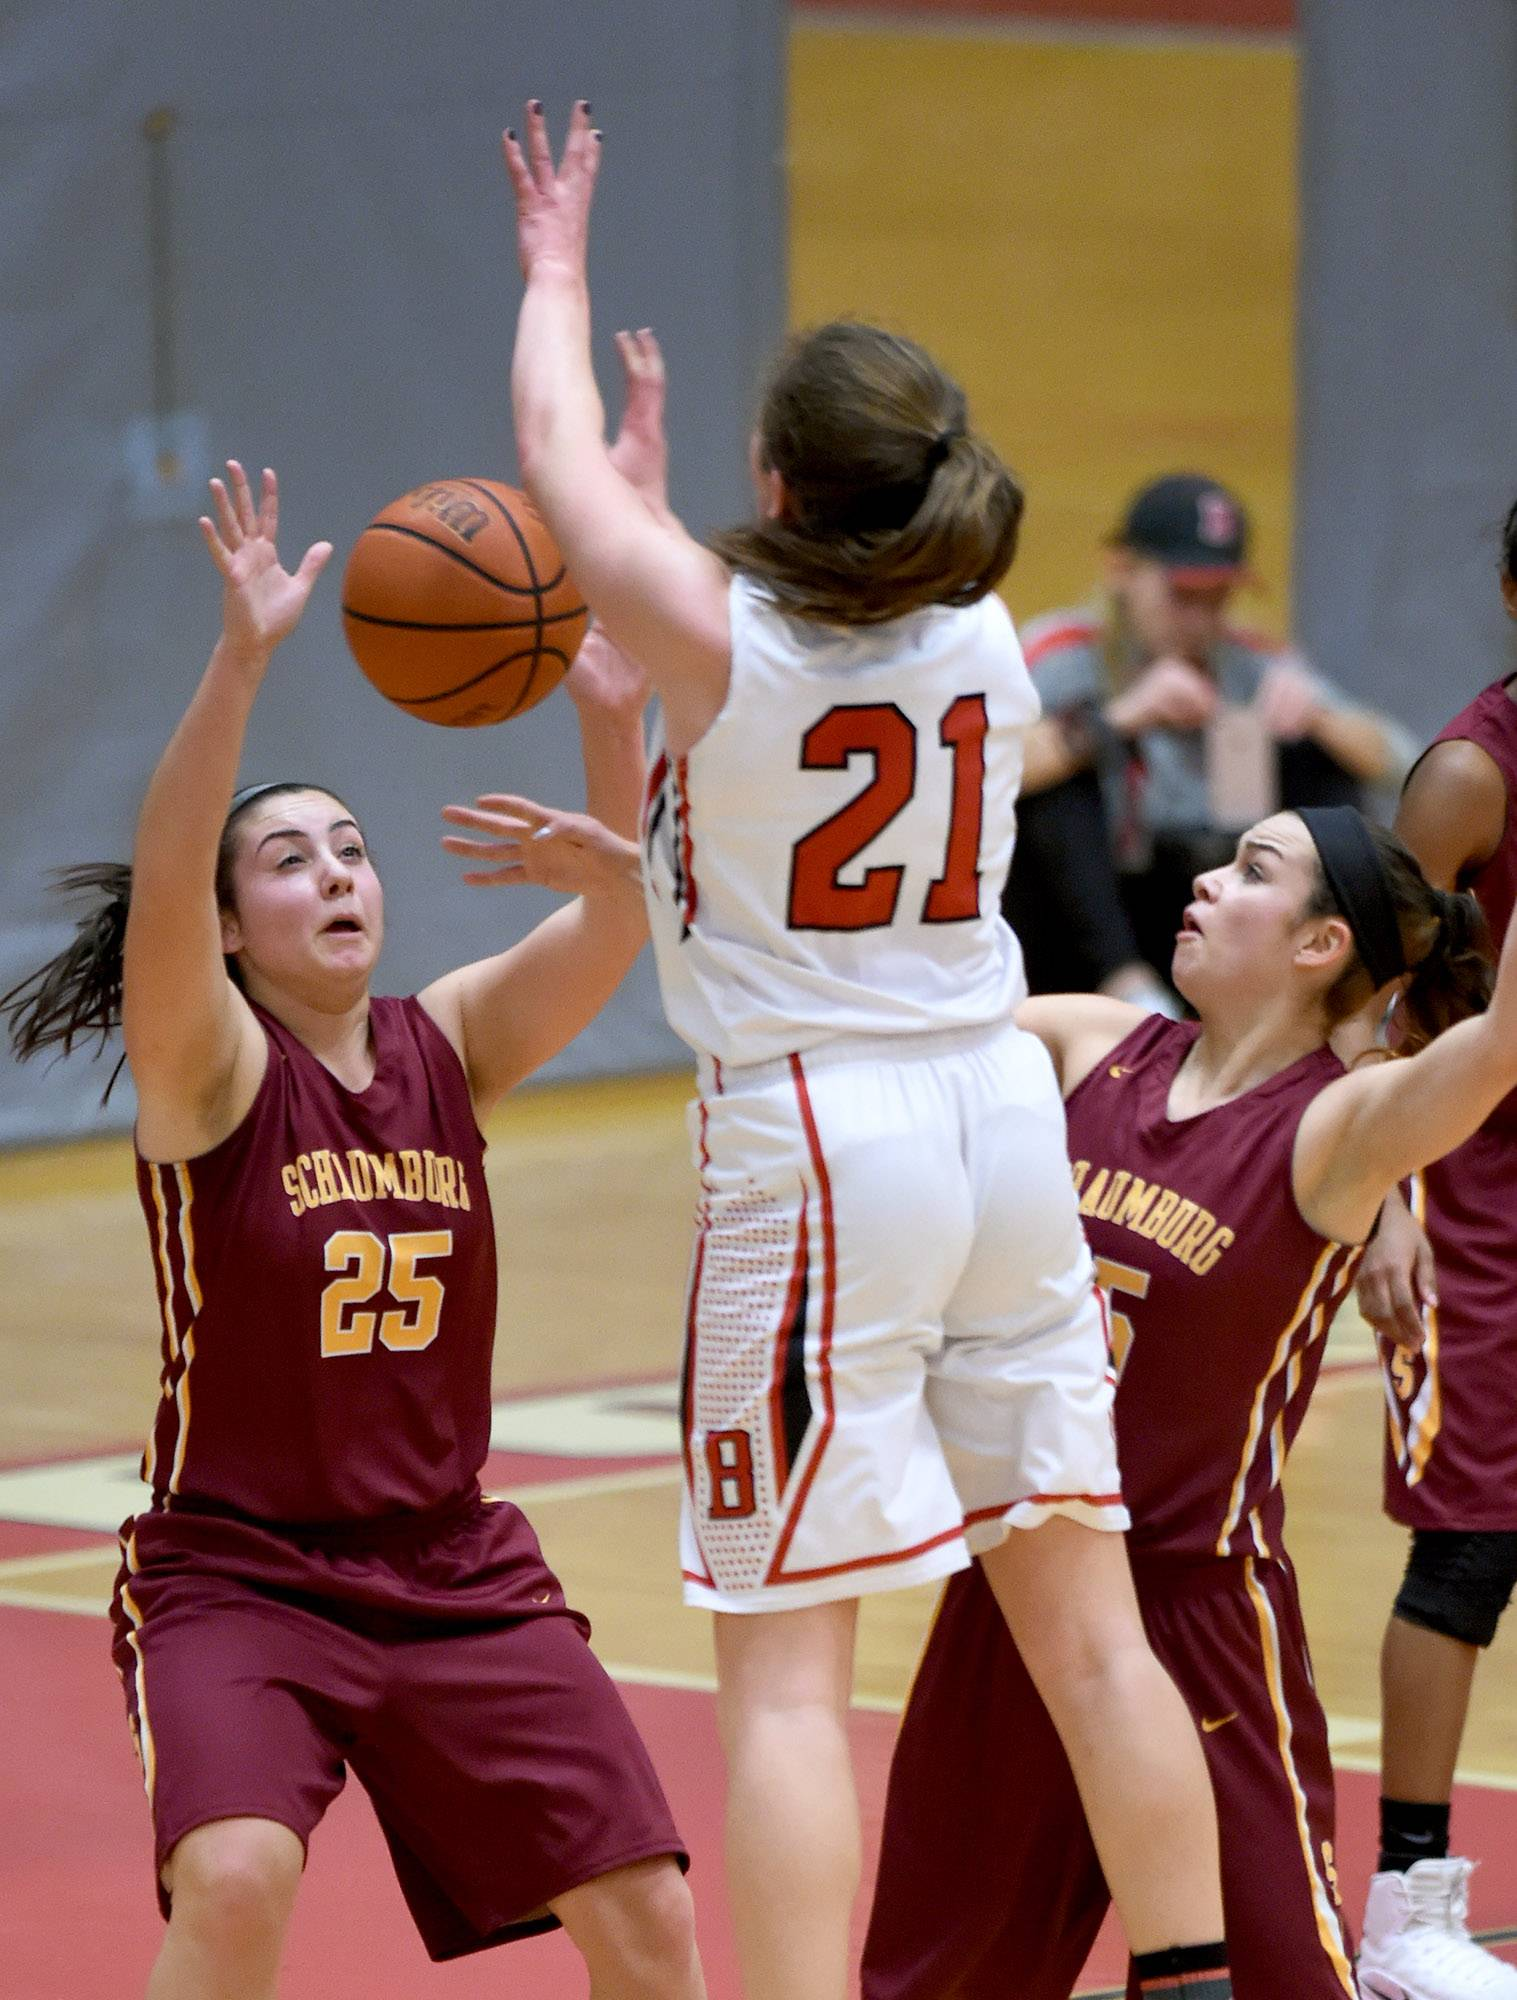 Schaumburg's Abigail Paolicchi (25) steals the ball from Barrington's Cecilia Stack (21) on Friday at Barrington.